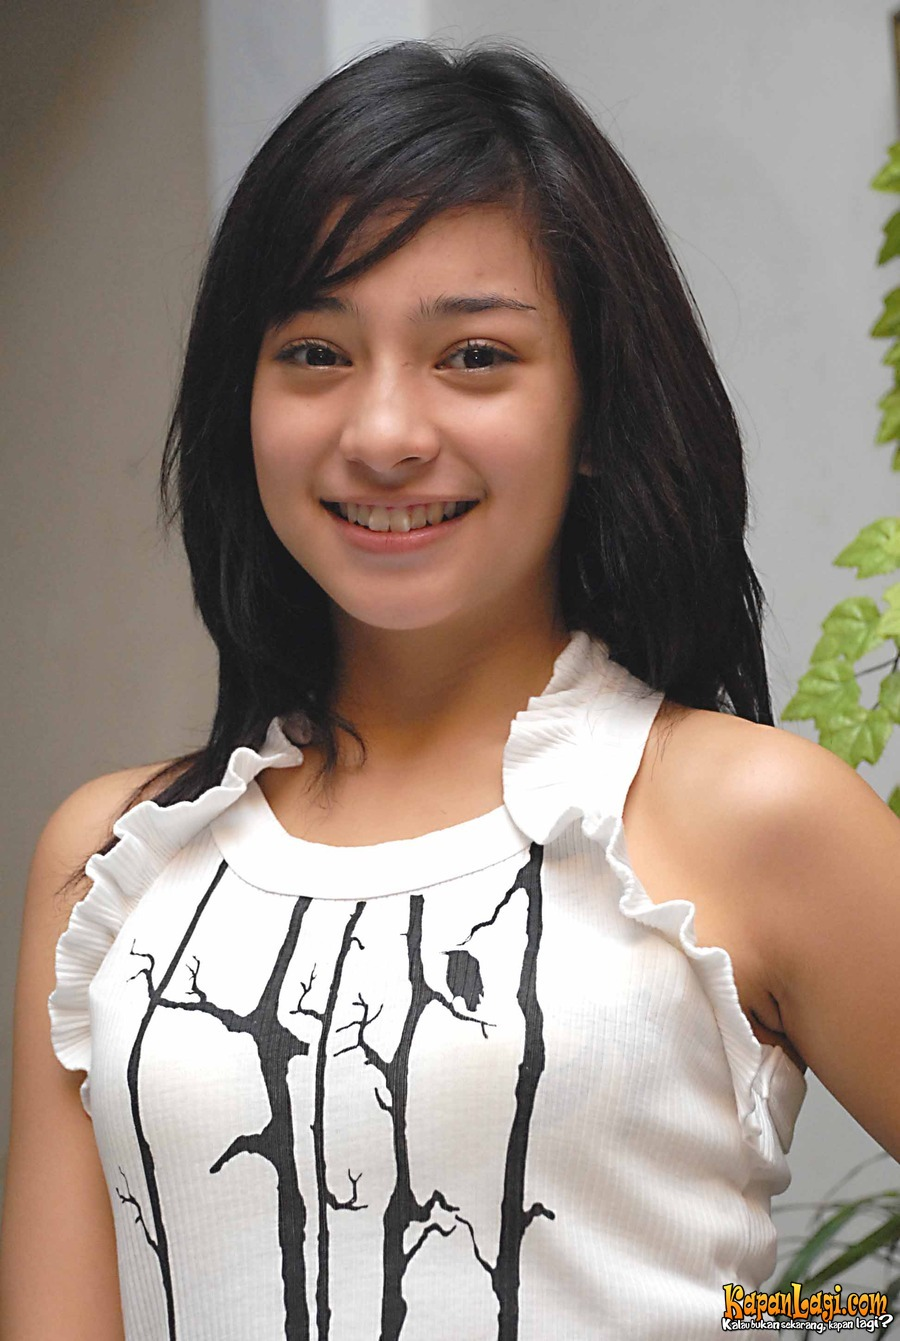 Profil Artis Imut(Nikita Willy)